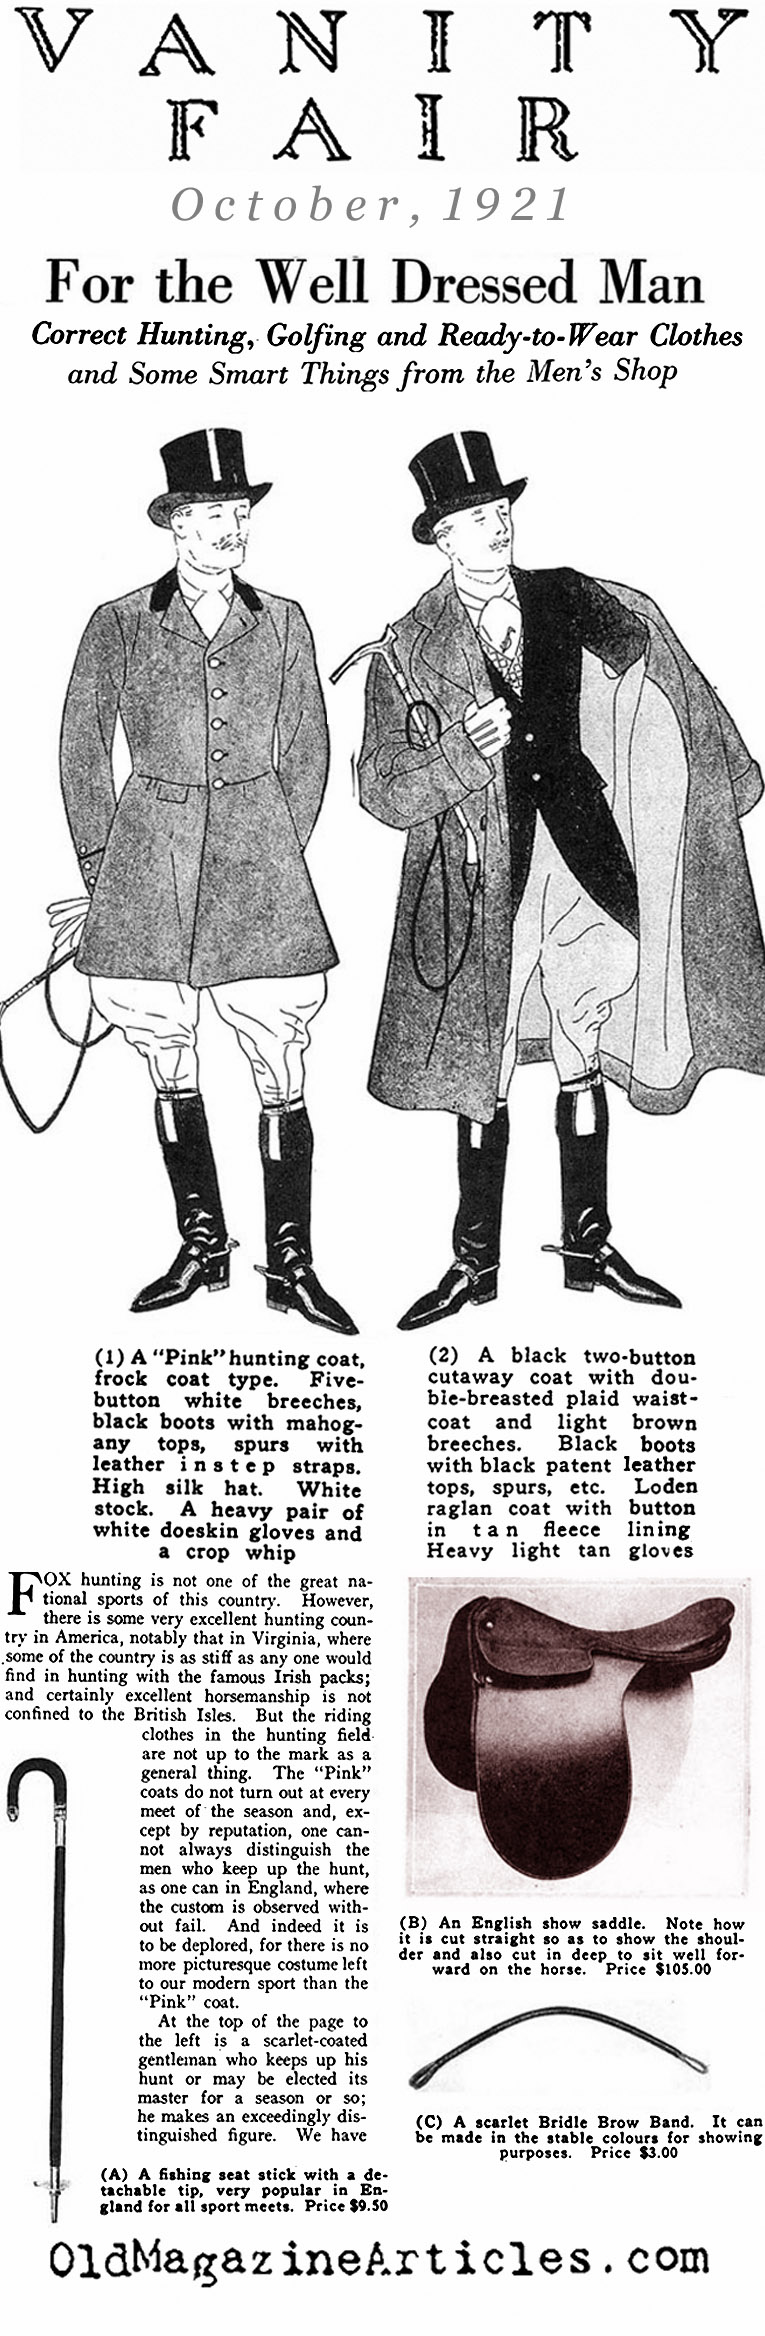 Clothing for Fox Hunters and Wall Streeters  (Vanity Fair Magazine, 1921)